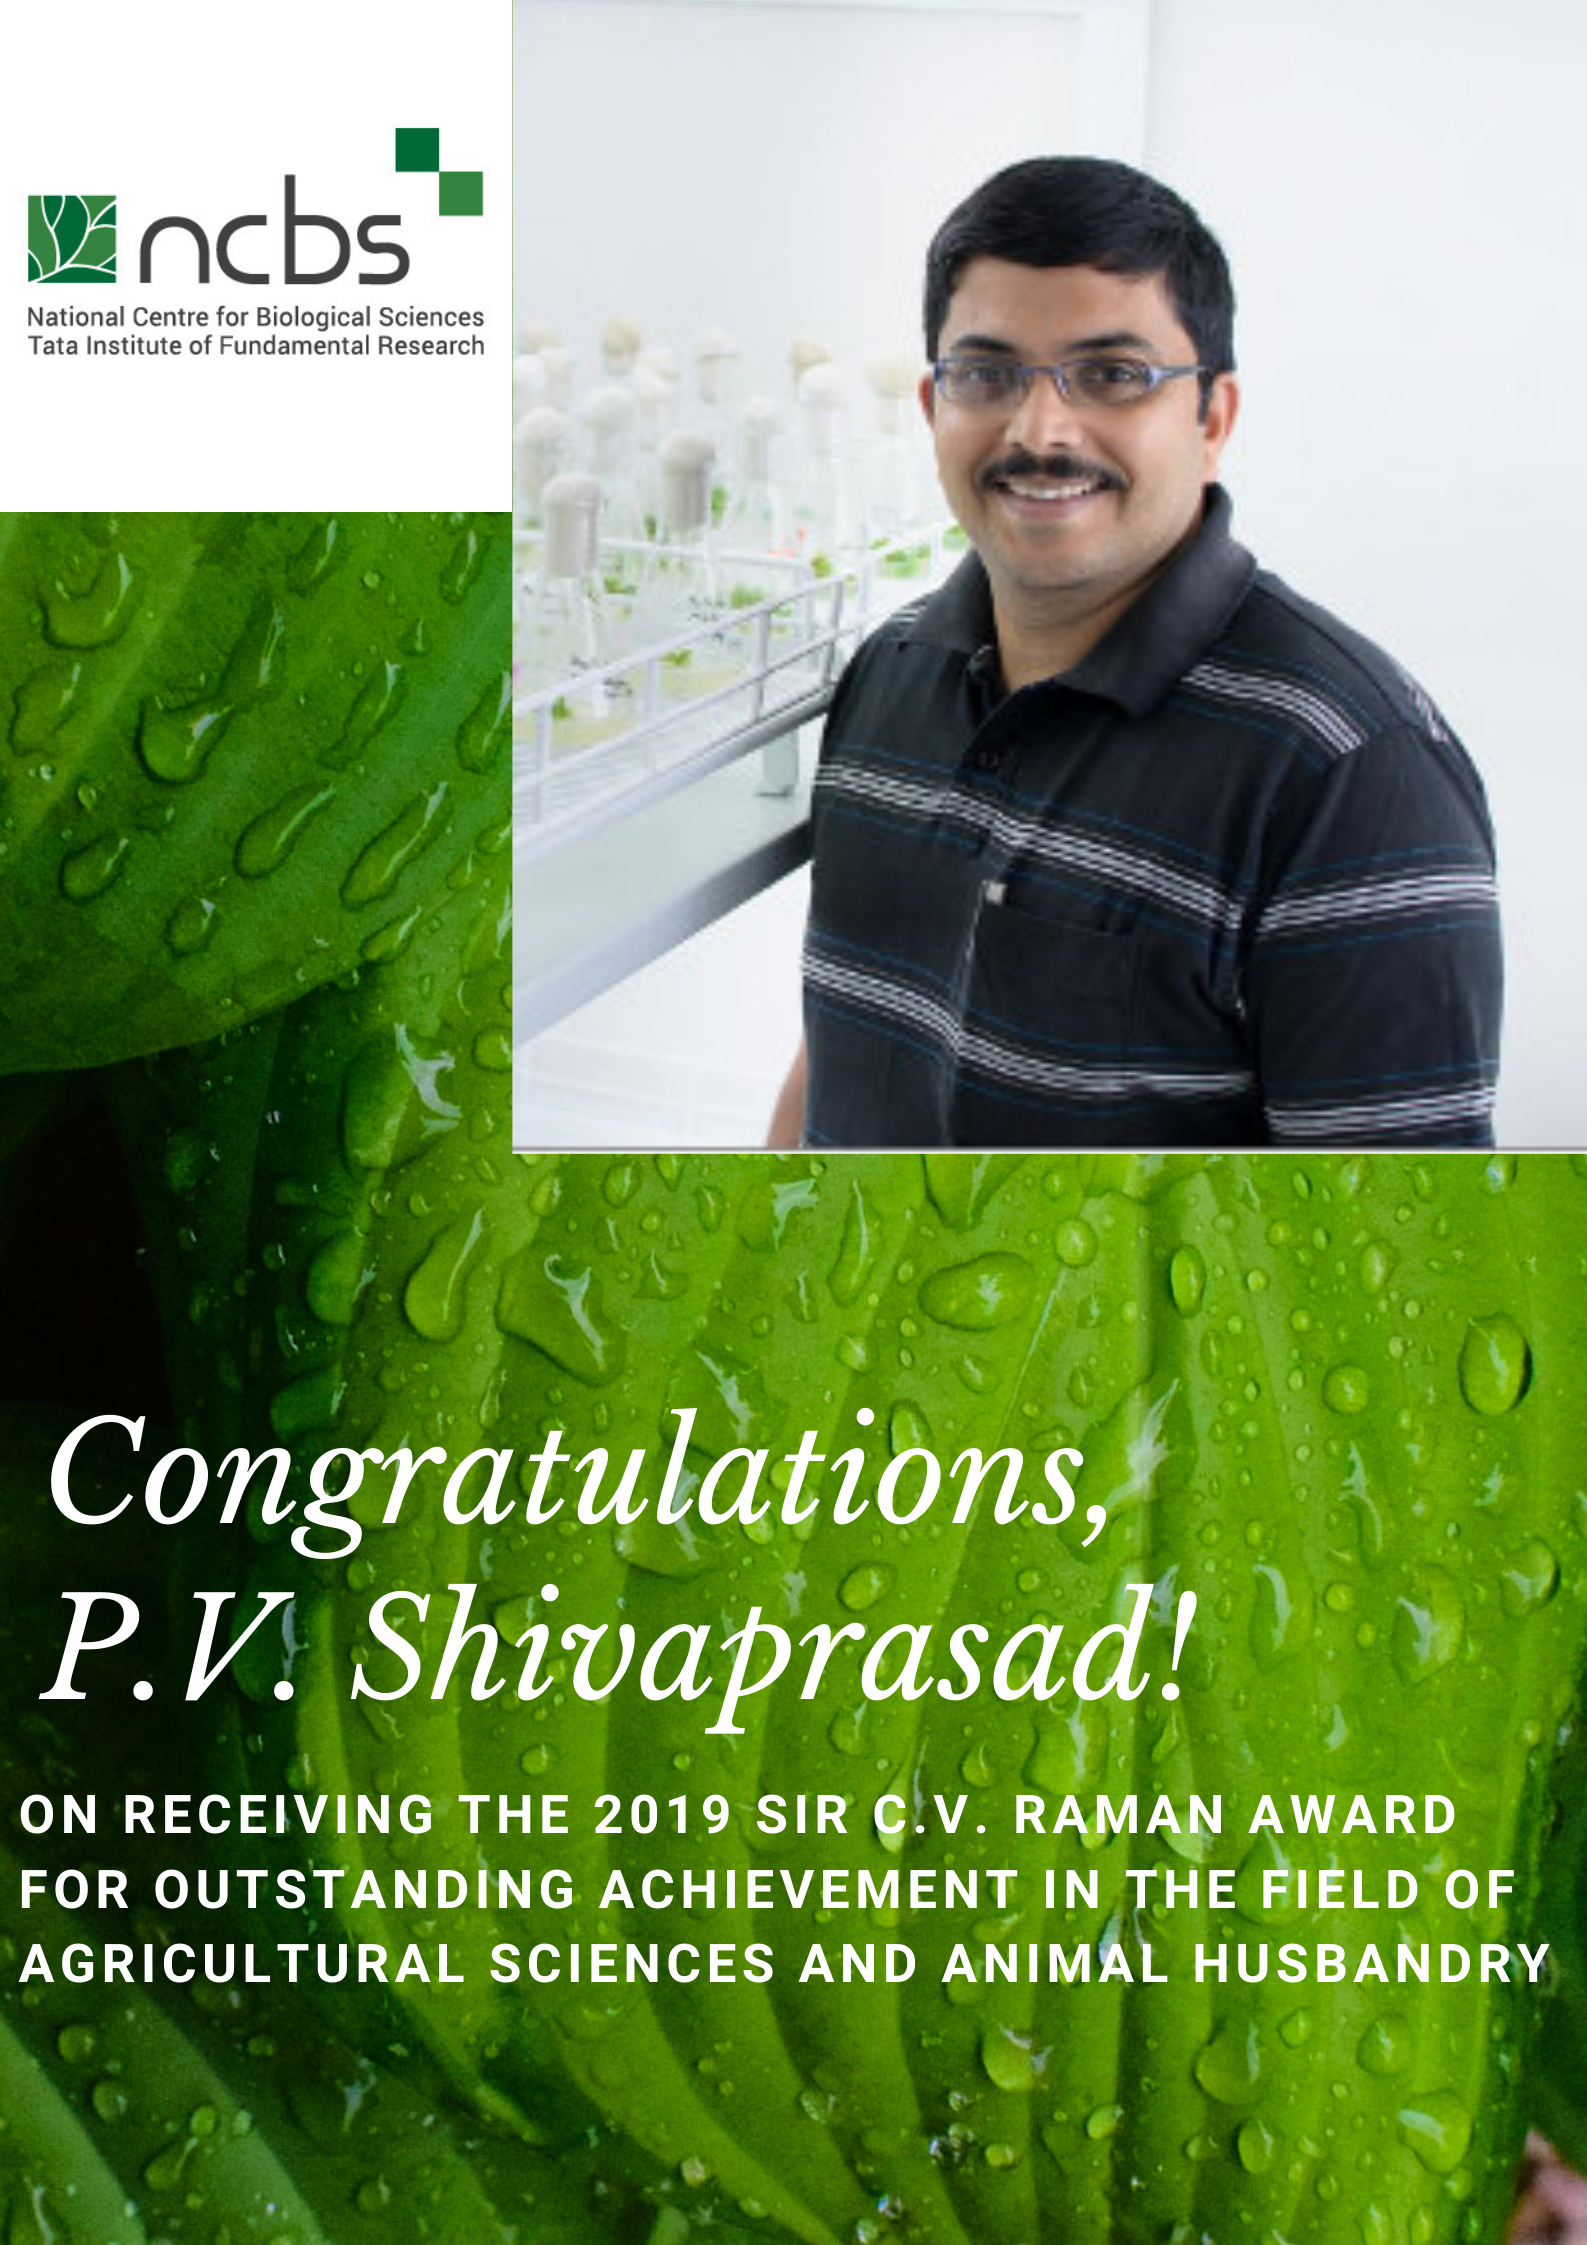 Congratulations to P.V. Shivaprasad on winning the CV Raman Award!